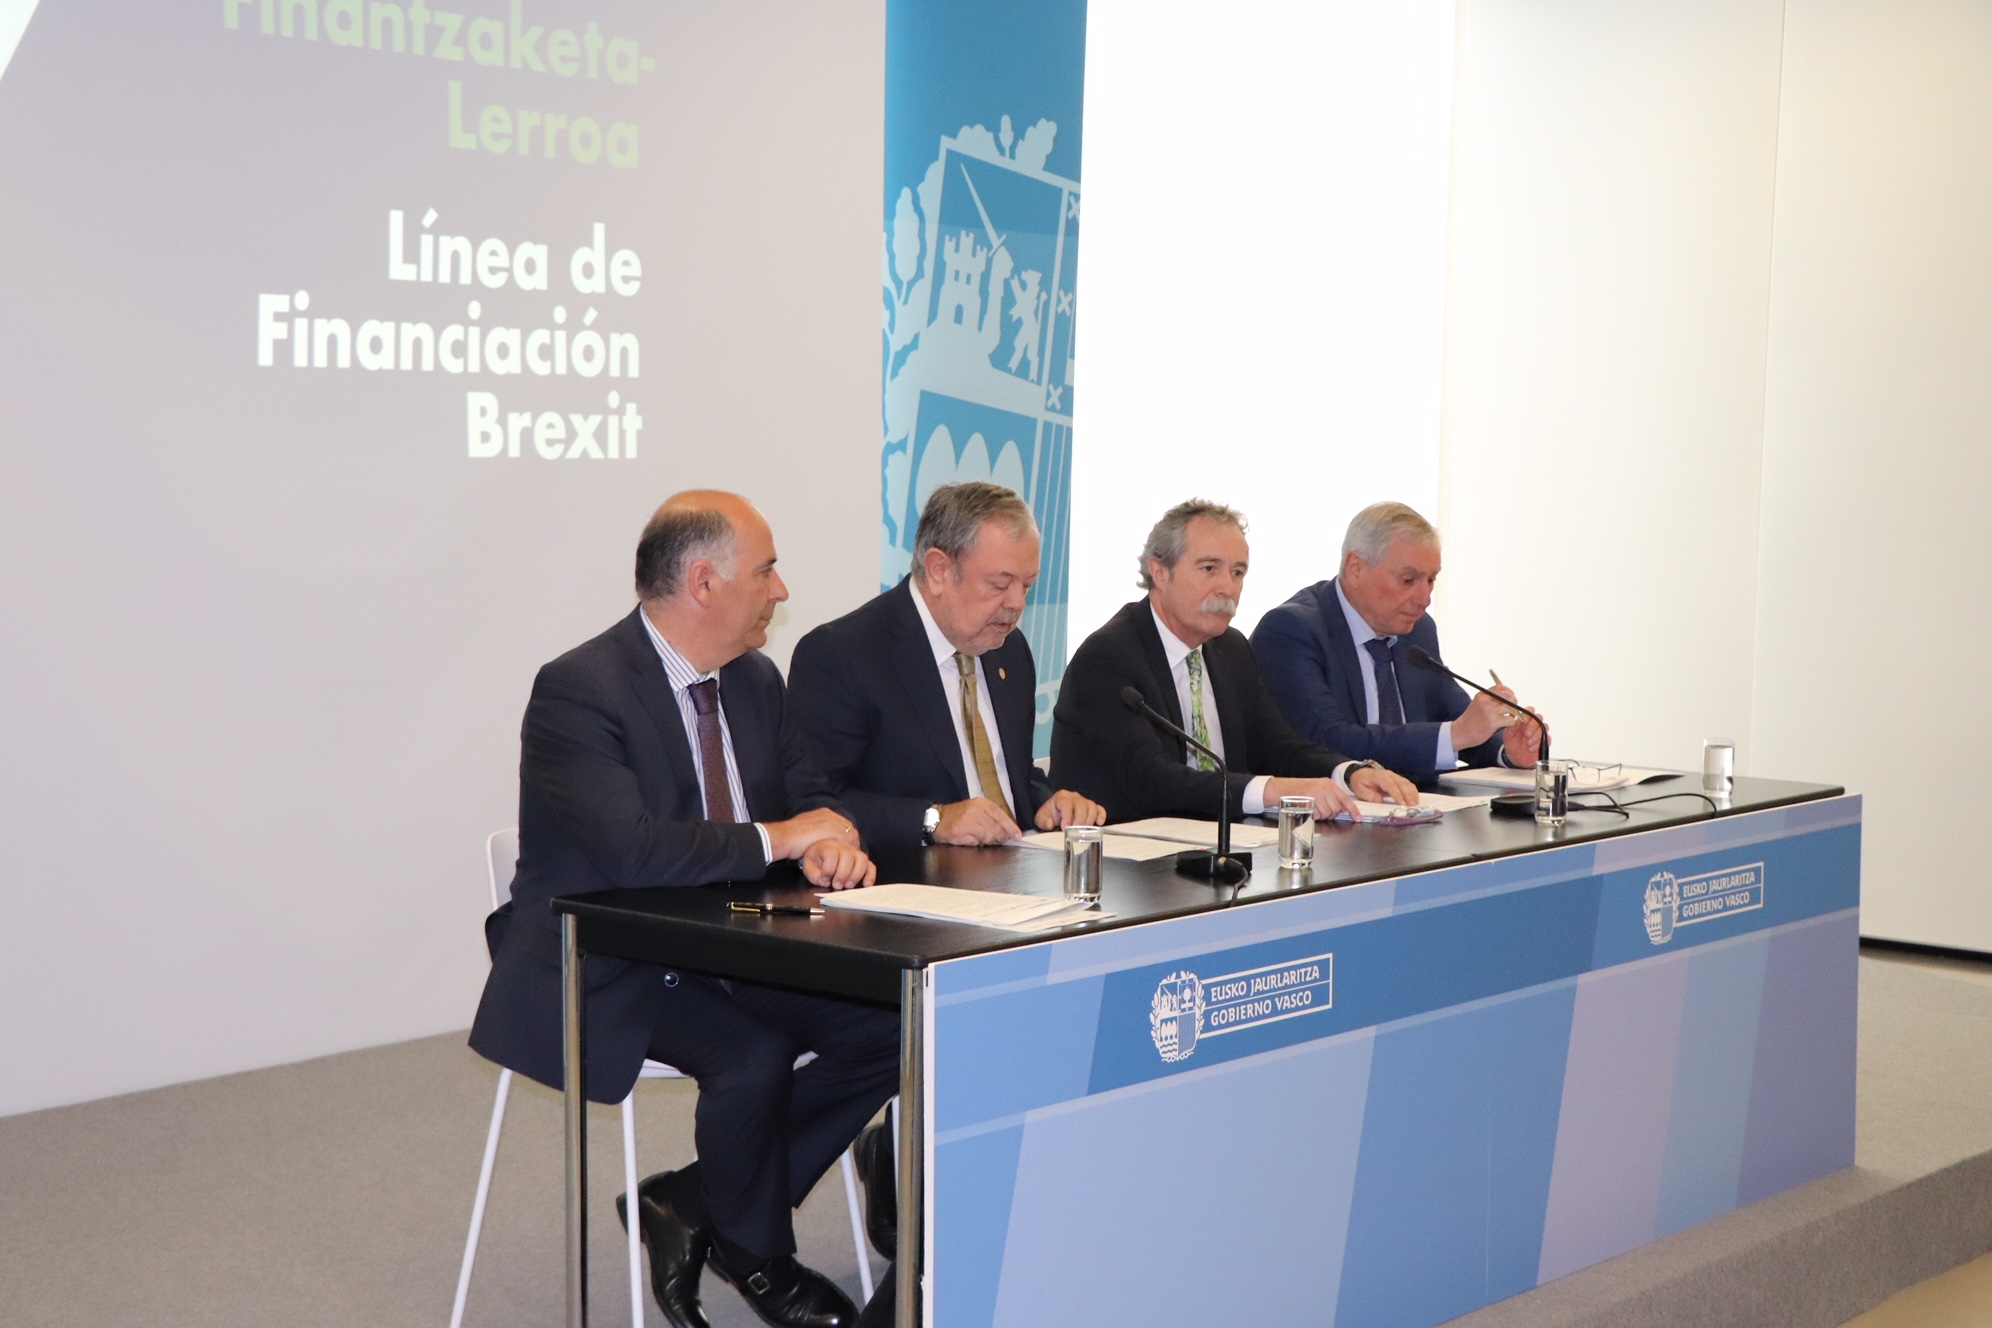 2019_02_27_azpiazu_financiacion_brexit_04.jpg